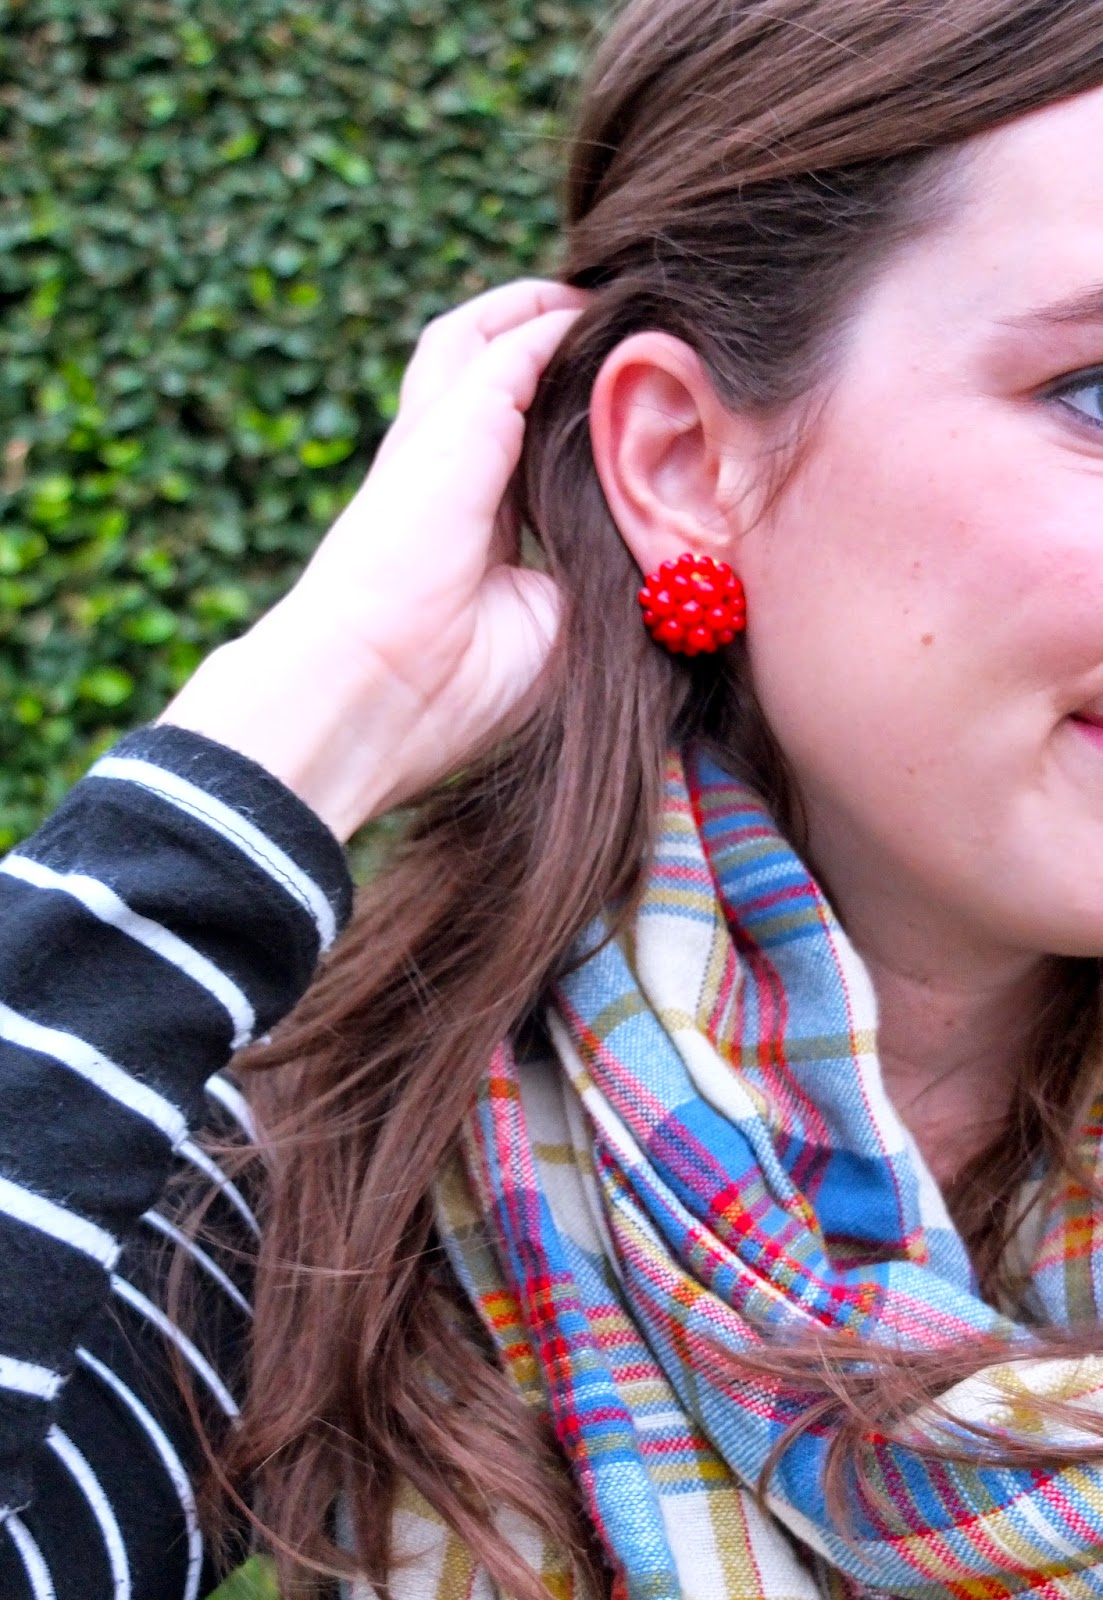 Lisi Lerch Earrings, Lisi Lerch Red Earrings, Lisi Lerch Button Earrings, Lisi Lerch Button, Red Button Earrings, The Lone Star Looking Glass Blog